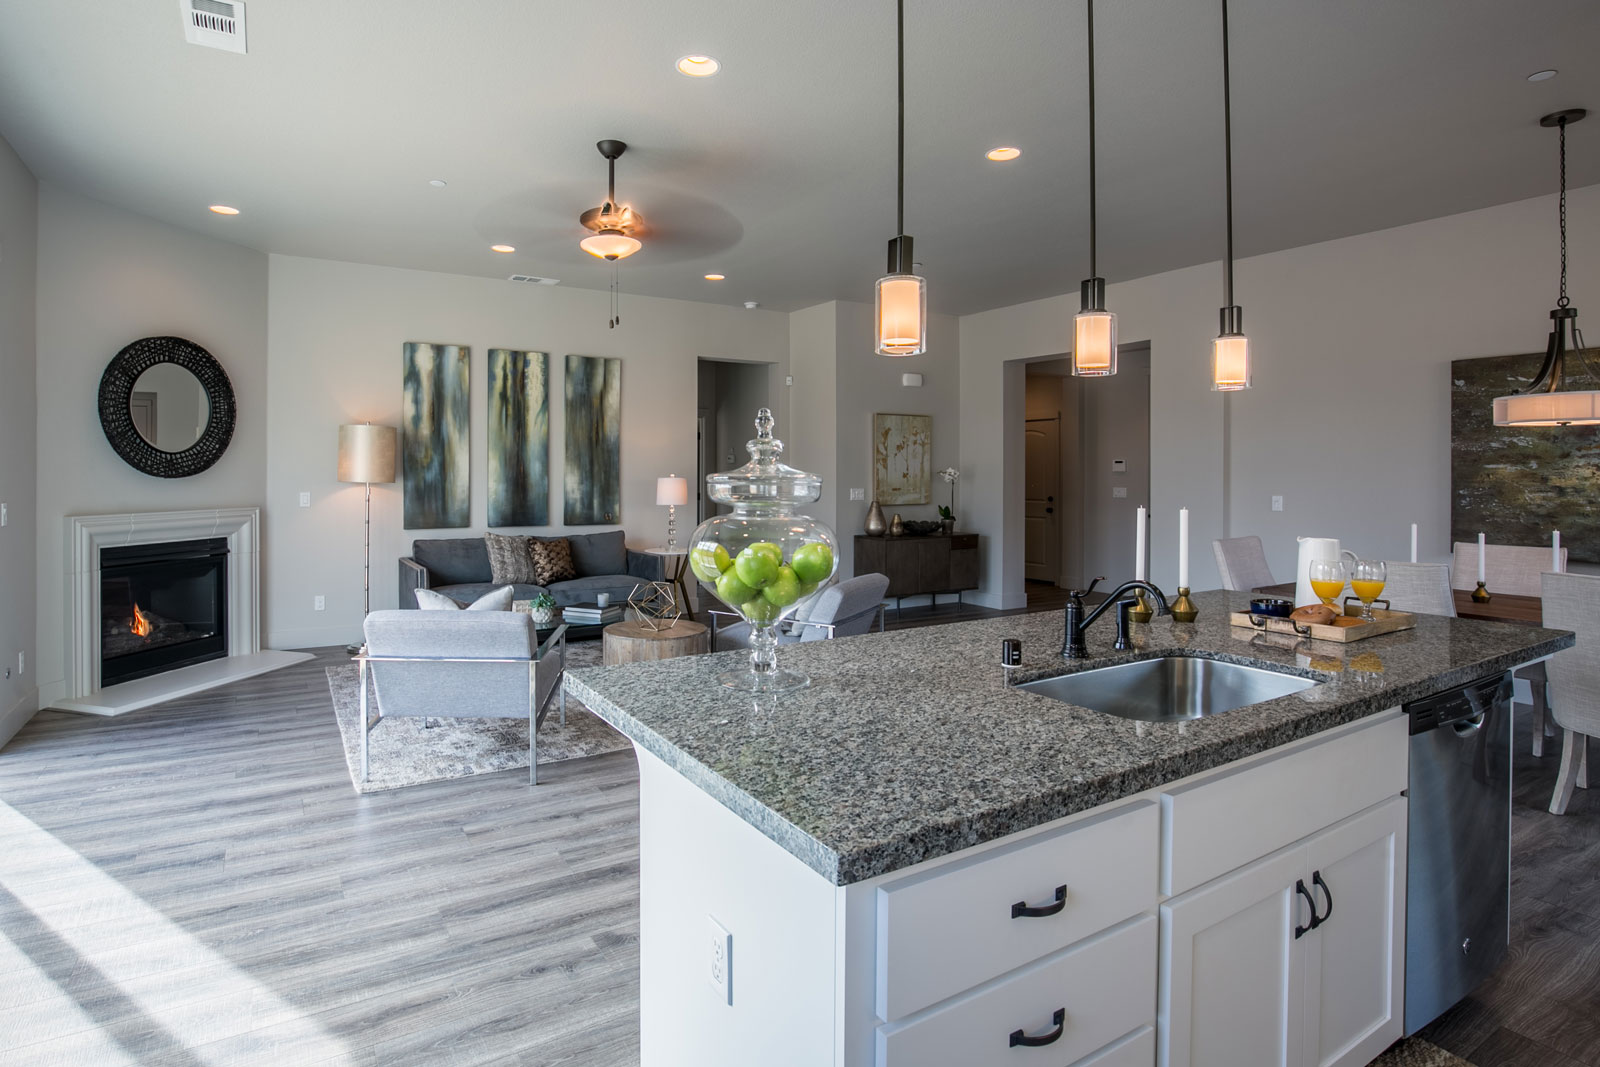 california home builder of communities with new homes commercial space and apartments - Kb Homes Design Studio